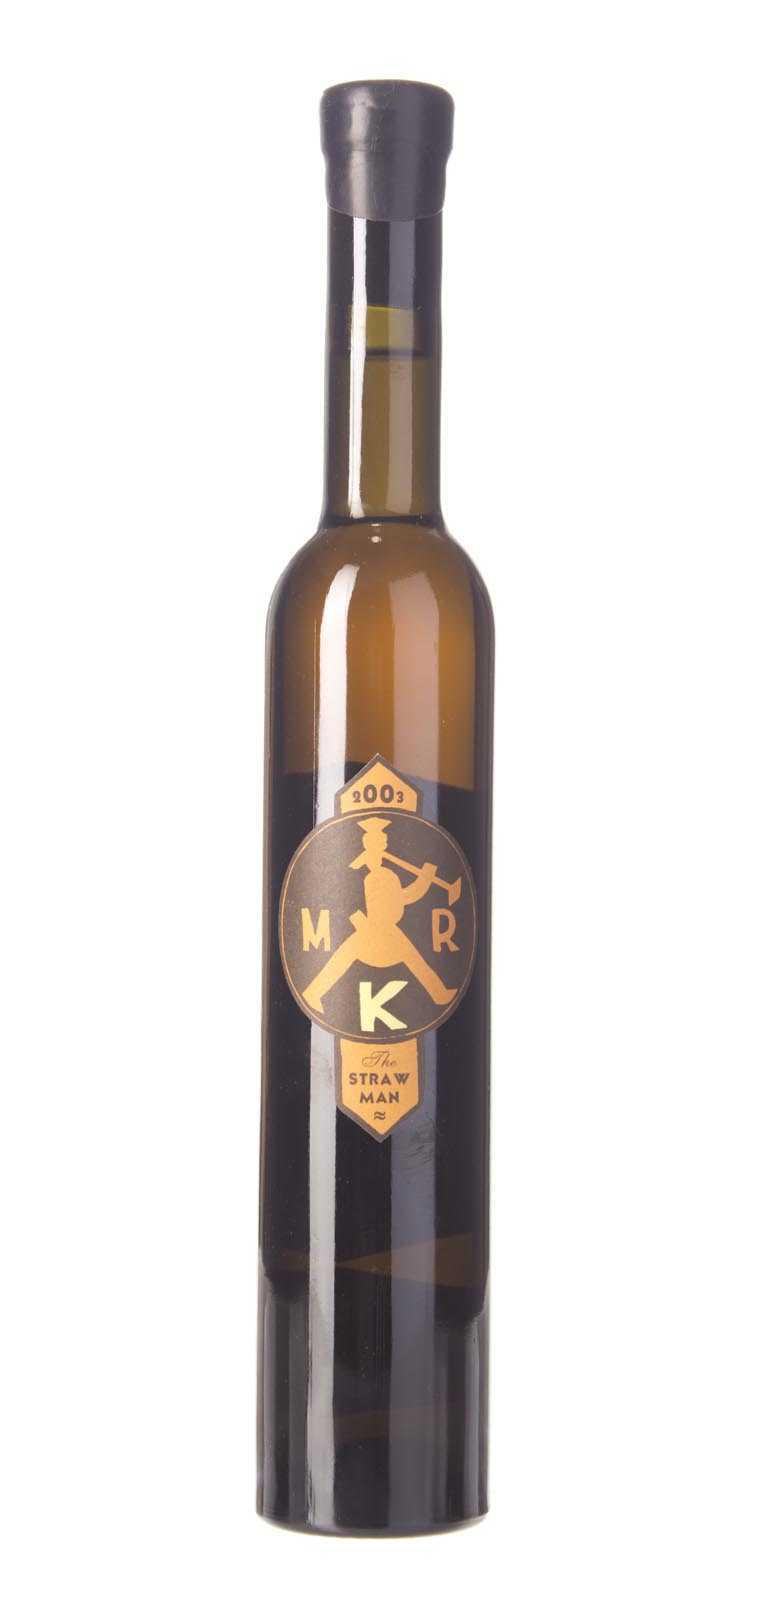 Mr. K The Strawman Vin de Paille 2003, 375ml (WA97) from The BPW - Merchants of rare and fine wines.